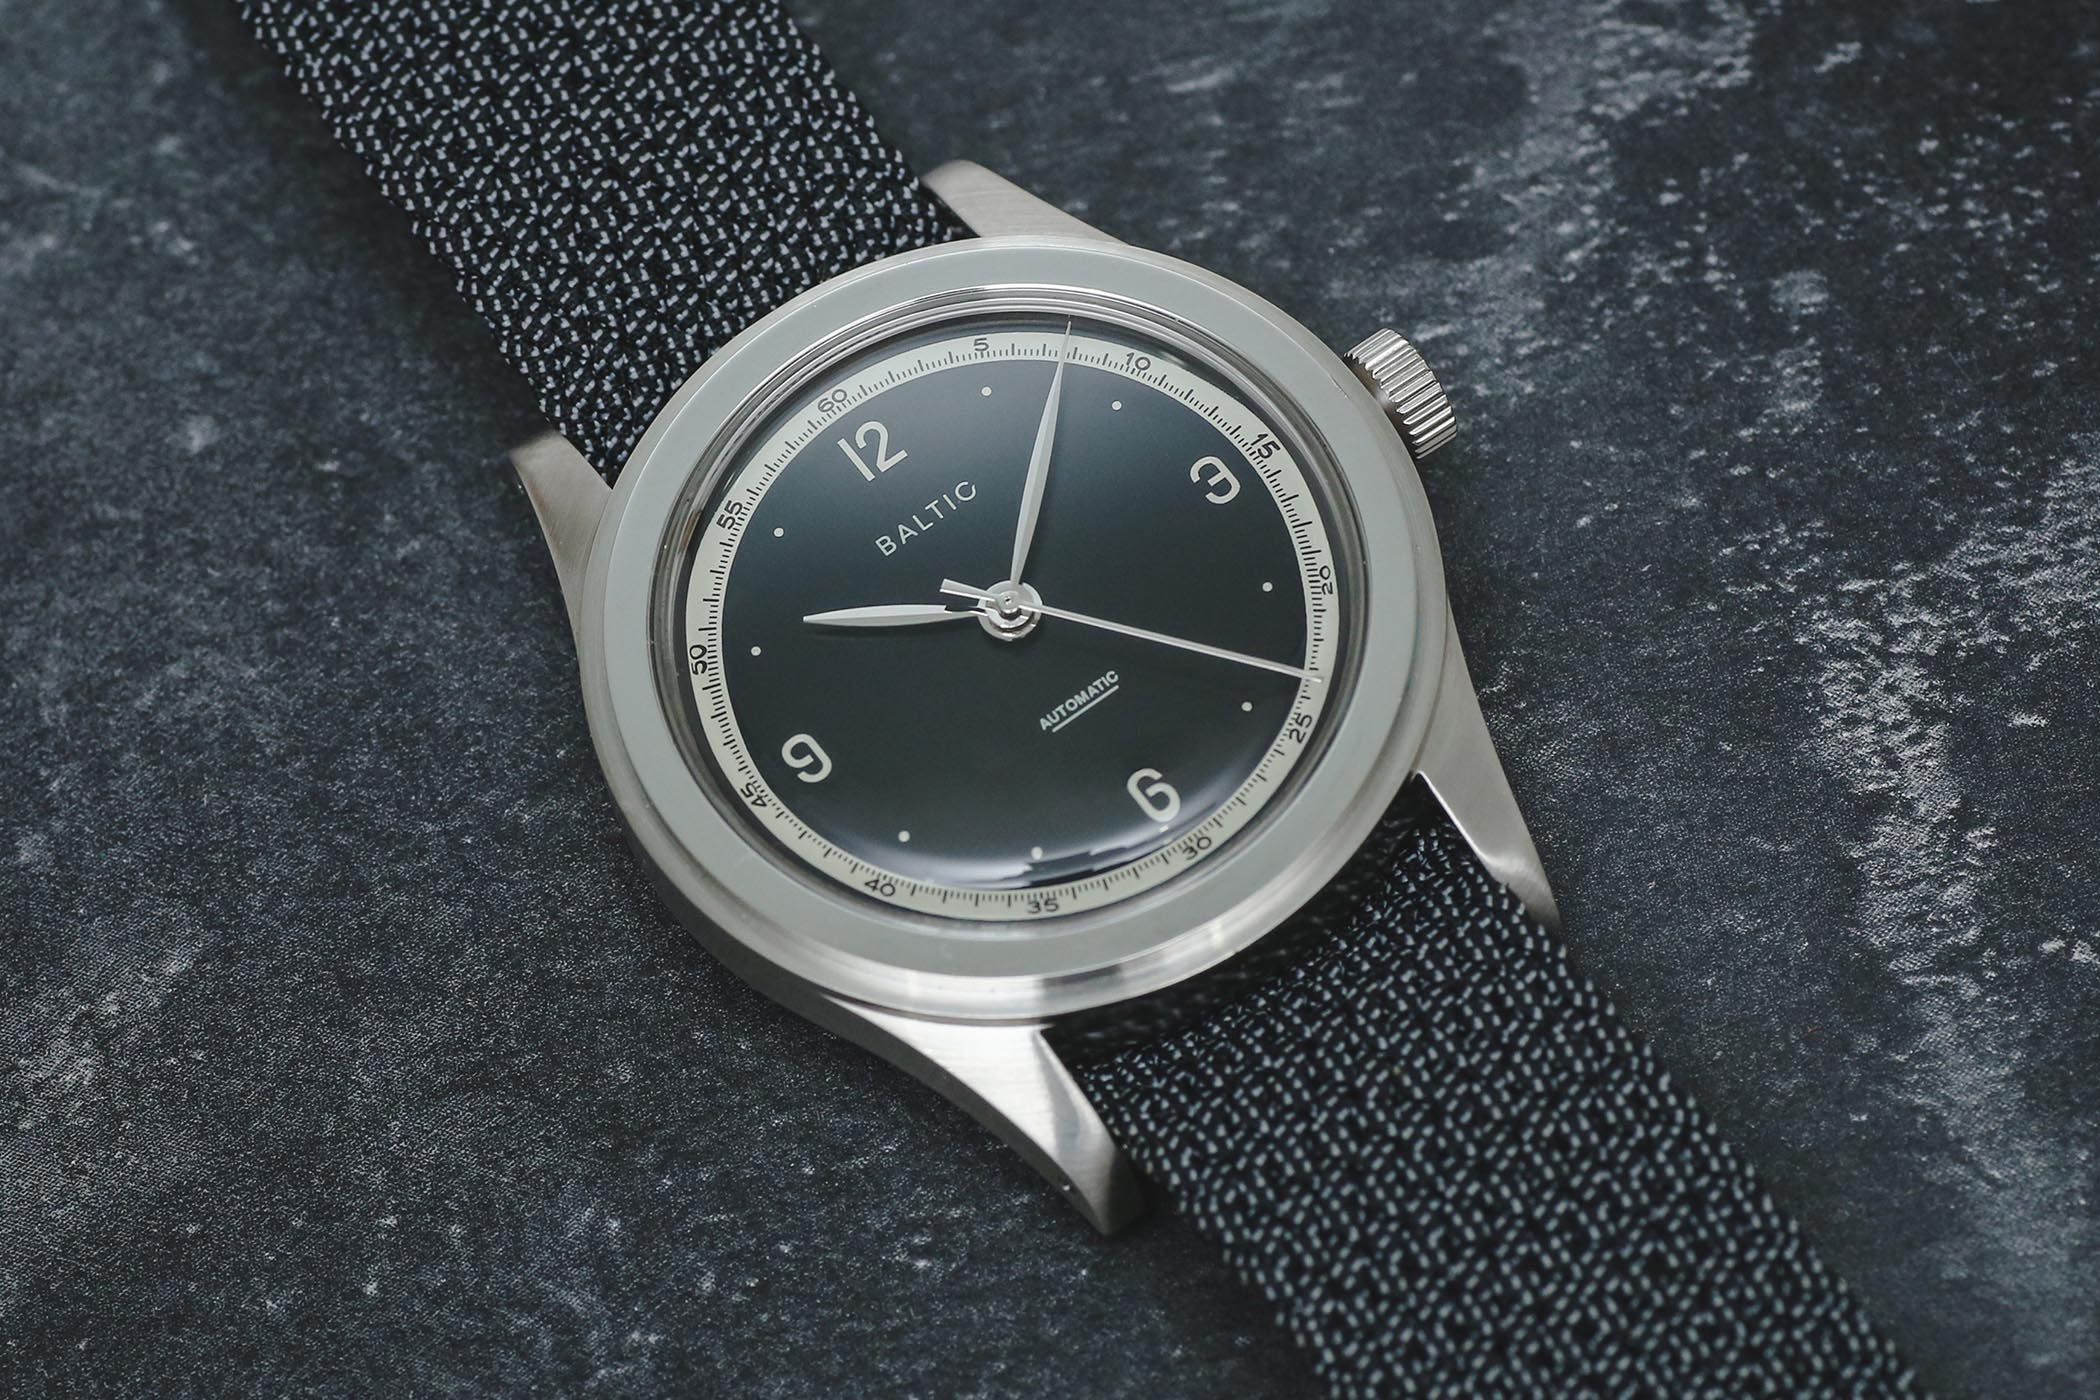 Baltic Watches HMS 001